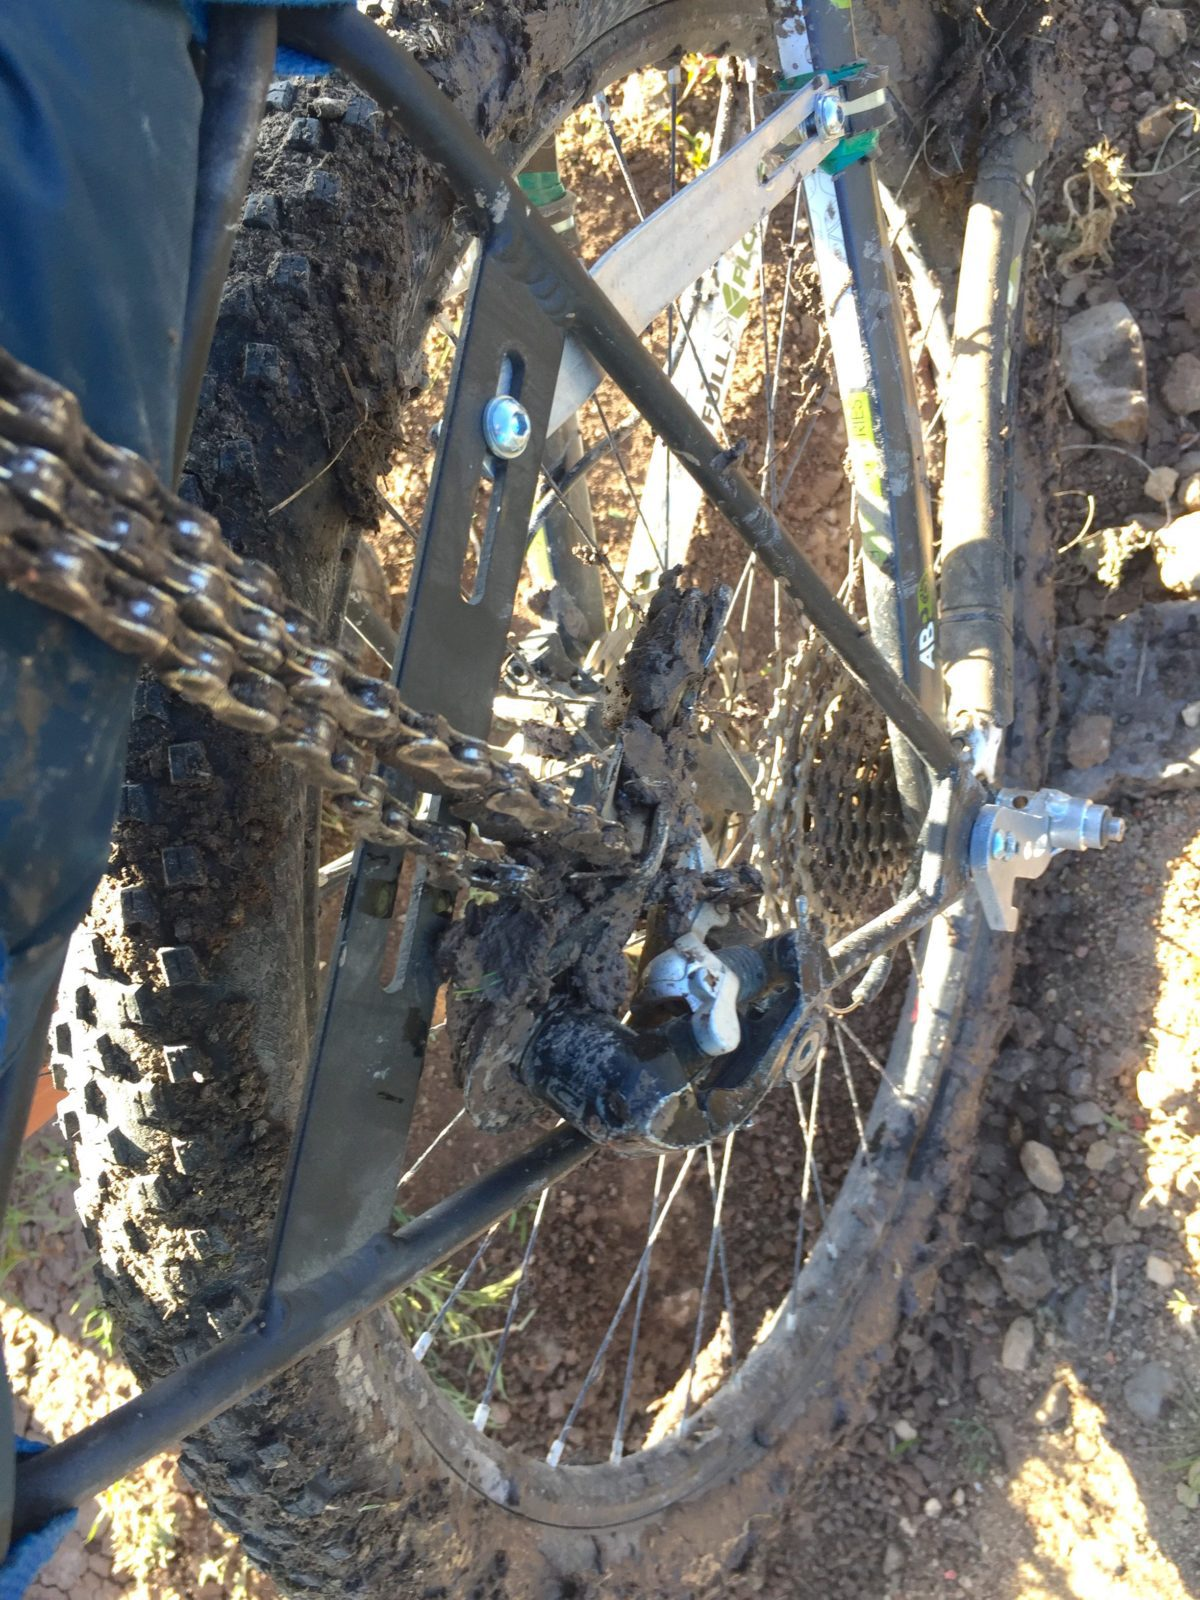 broken derailleur bikepacking